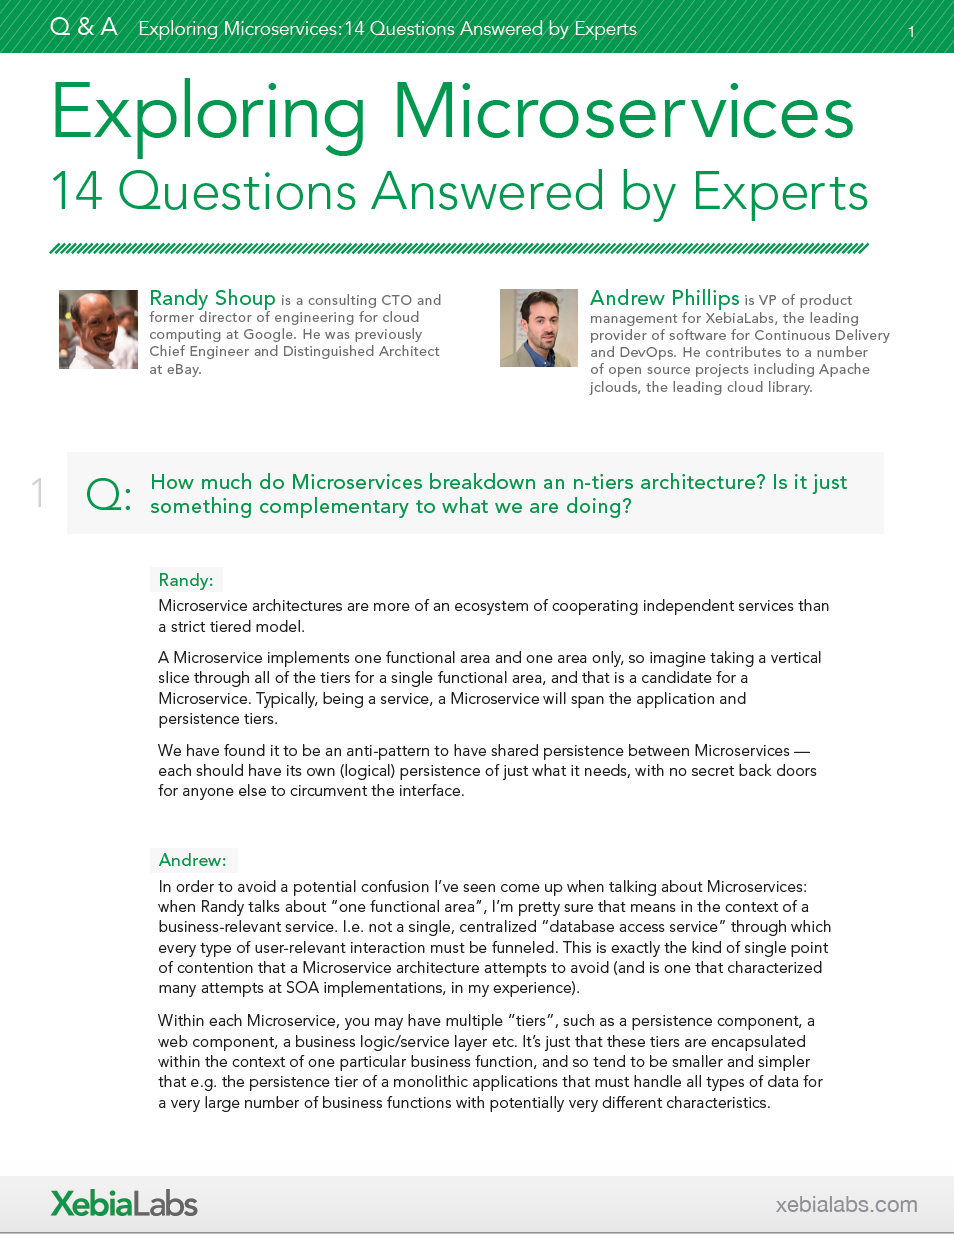 Exploring Microservices - 14 Questions Answered by Experts